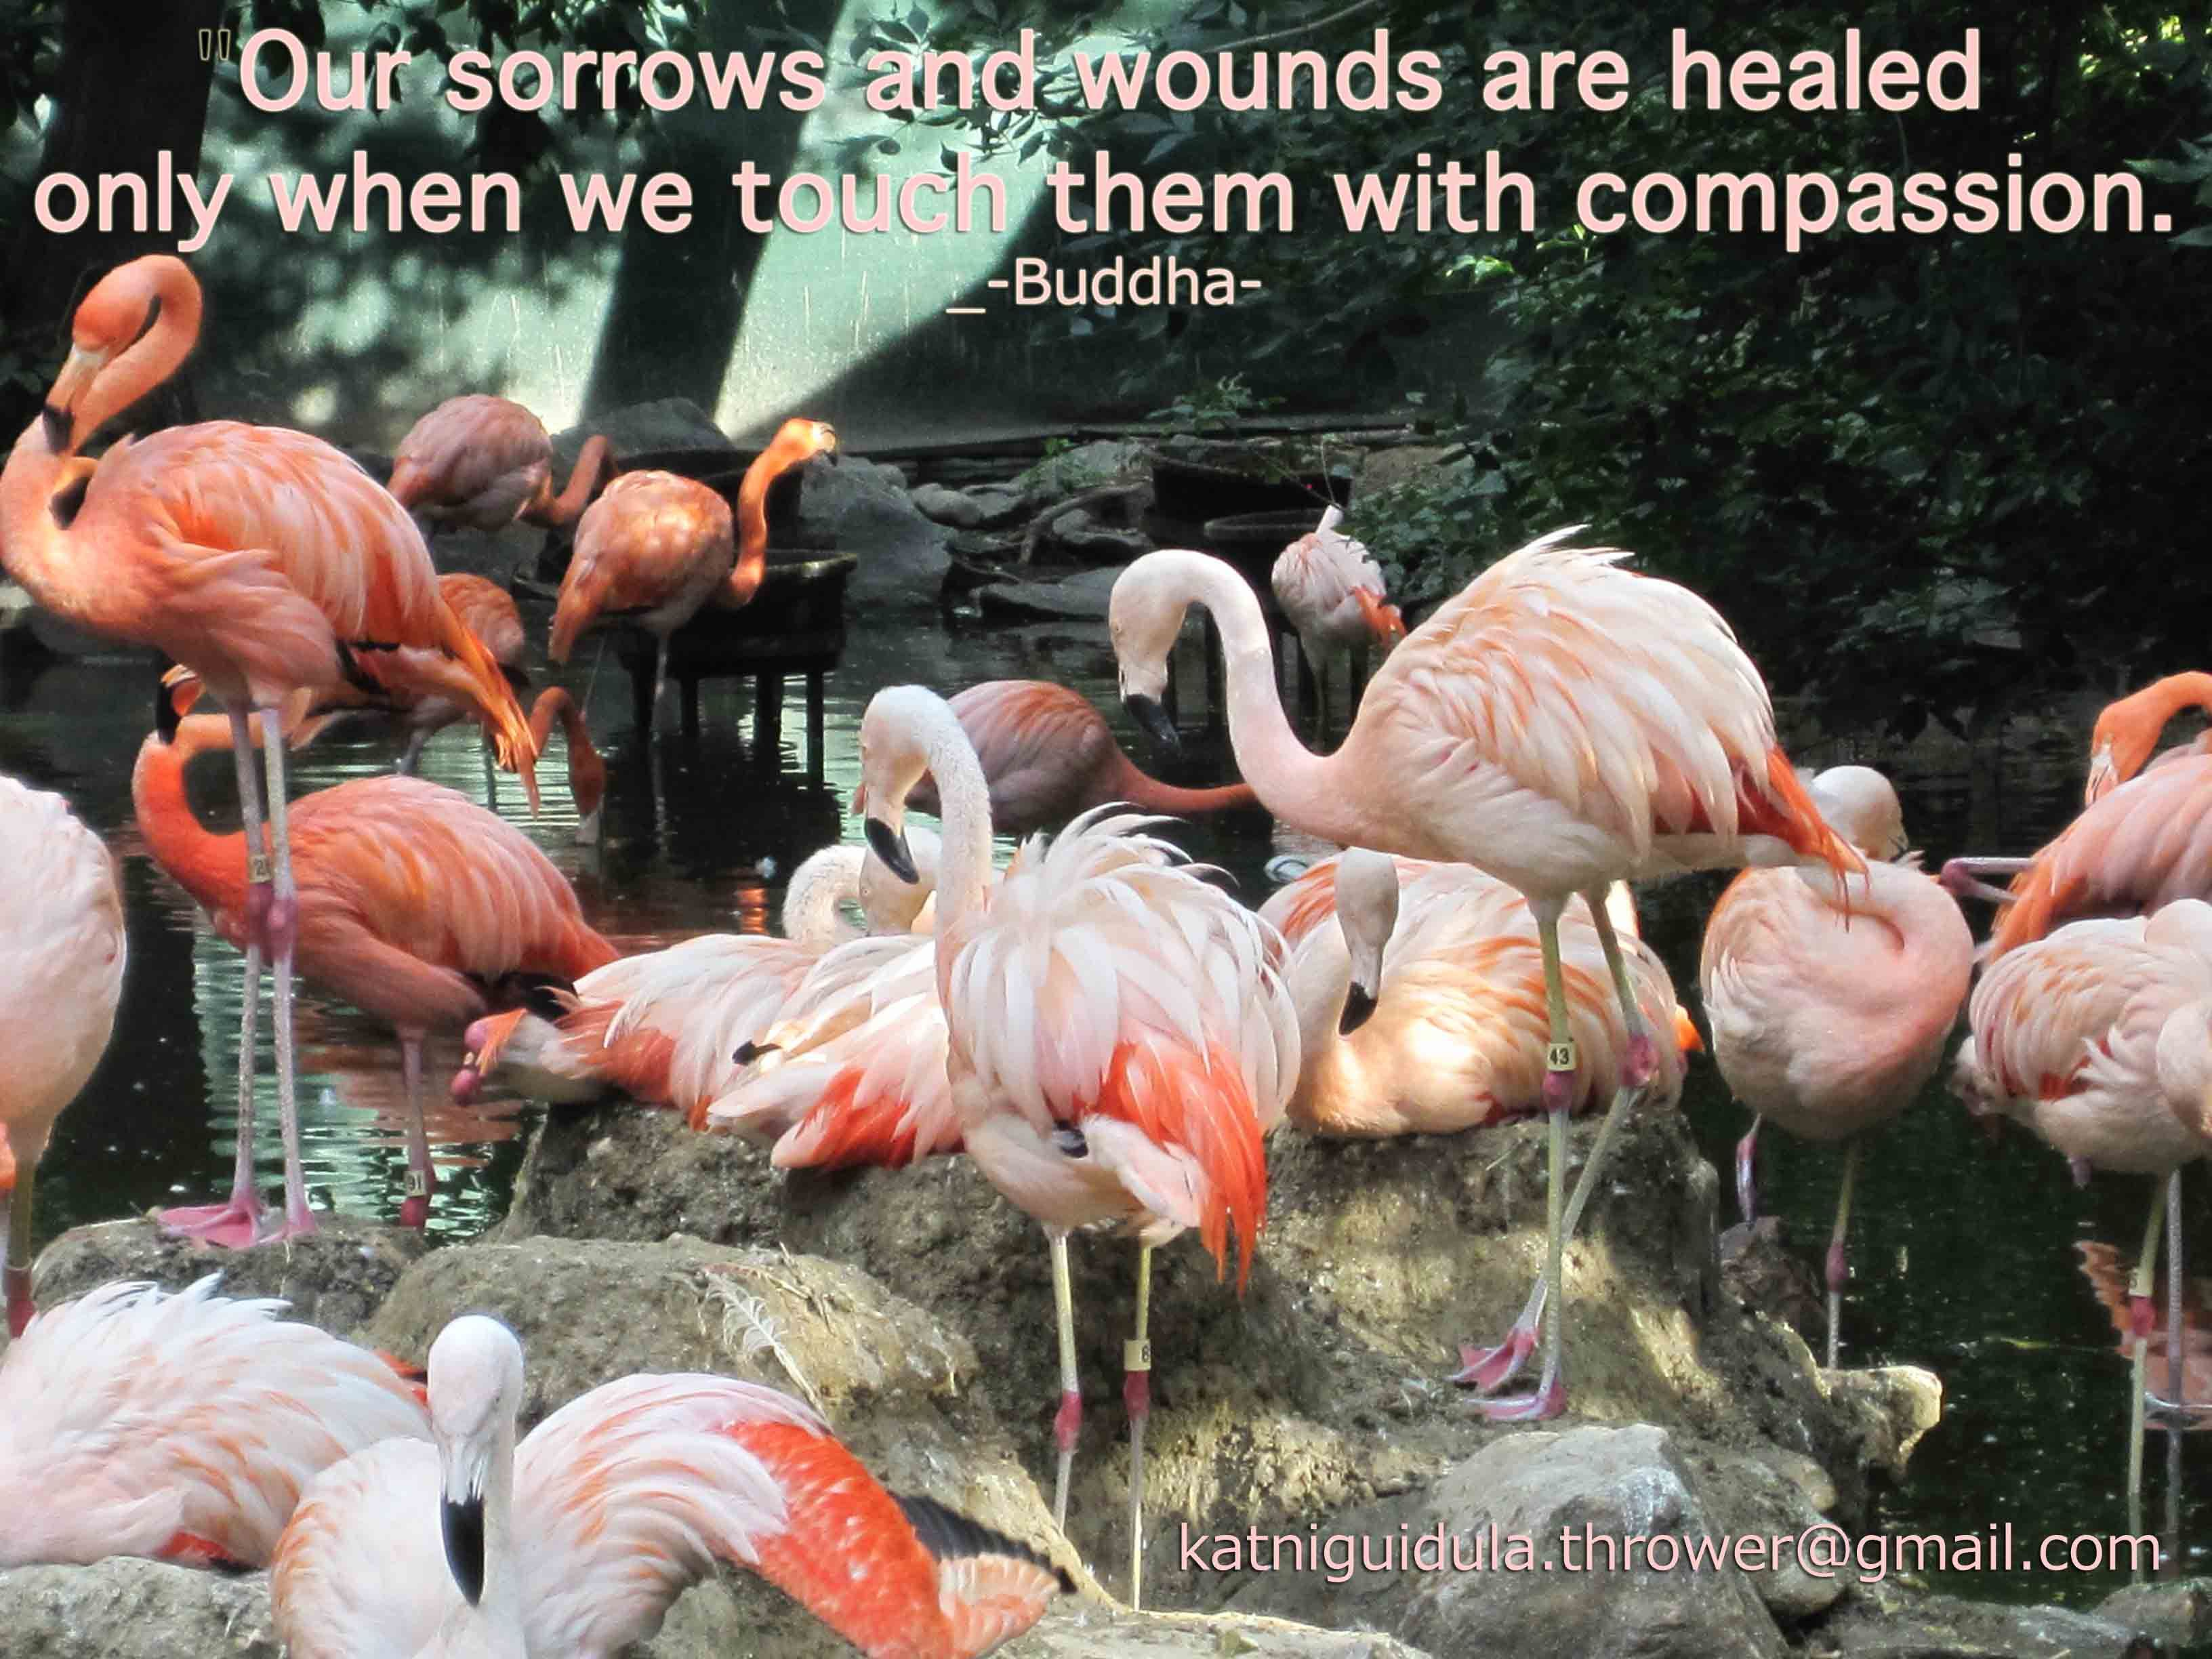 """""""Our sorrows and wounds are healed only when we touch them with compassion.""""  - Buddha -"""